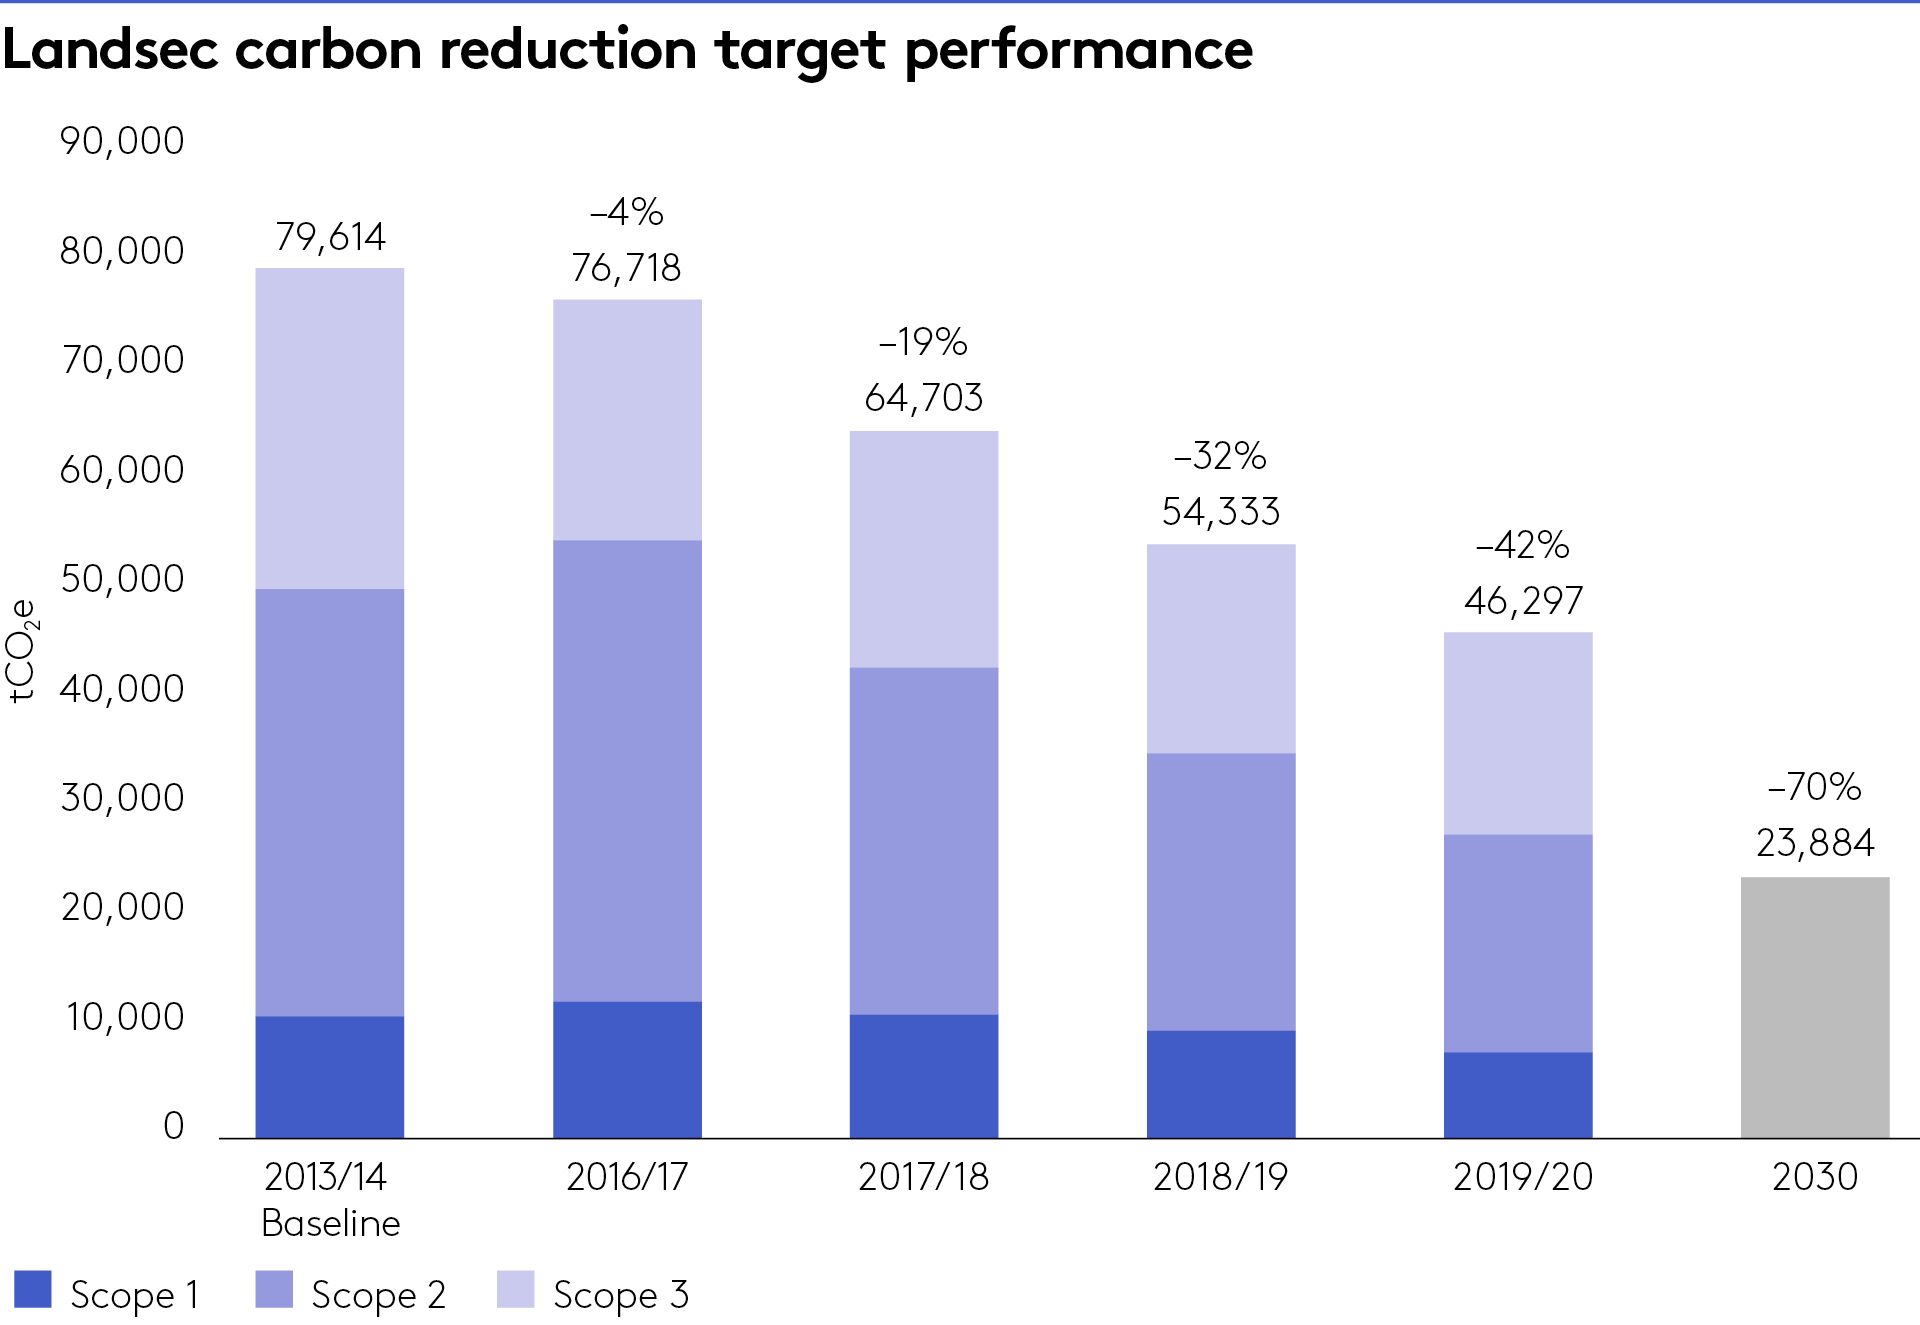 Carbon reduction target performance chart